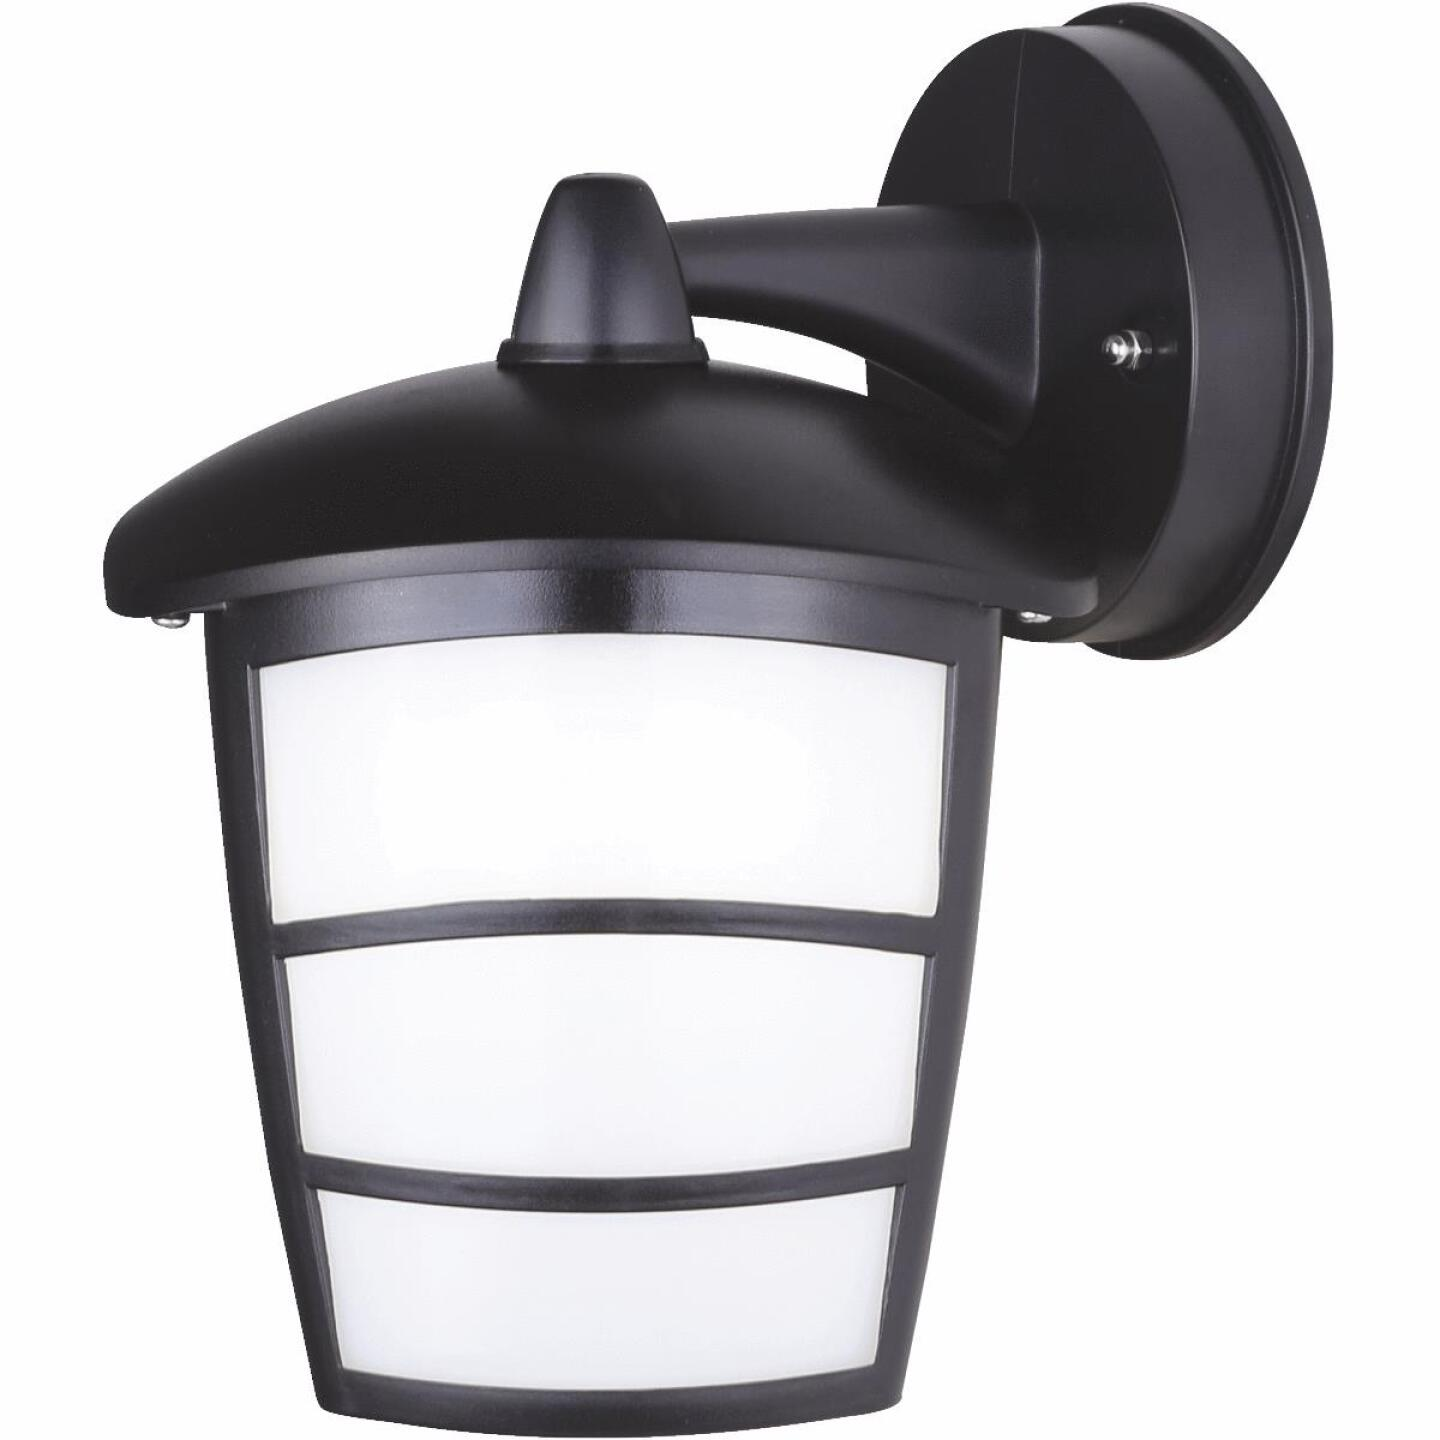 Canarm Black LED Downlight Outdoor Wall Fixture Image 1